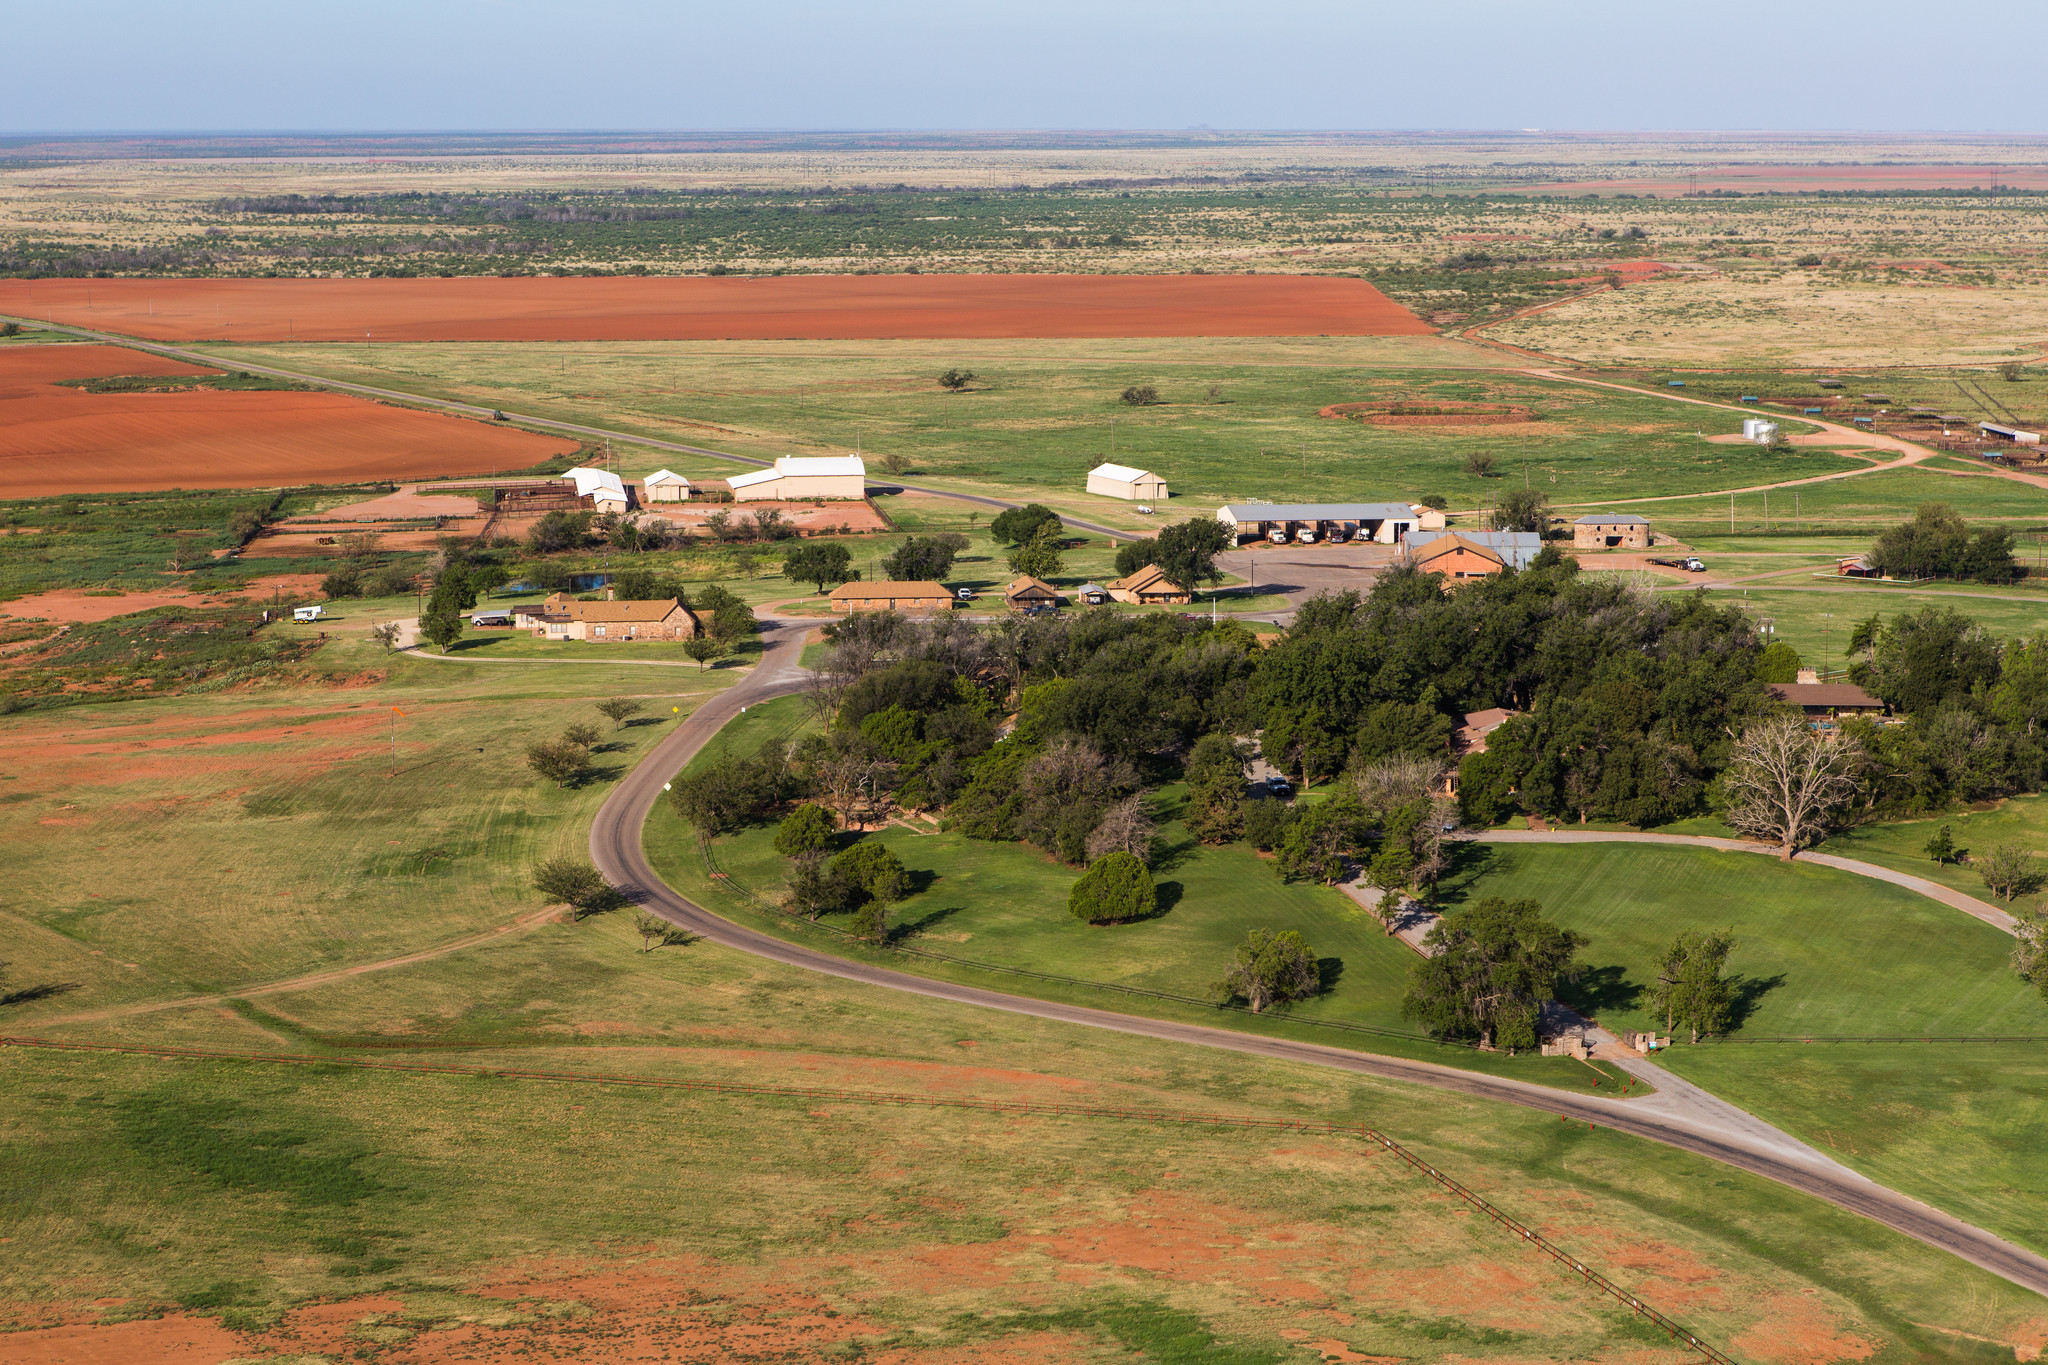 Square Mile Texas Ranch For Sale All Yours For